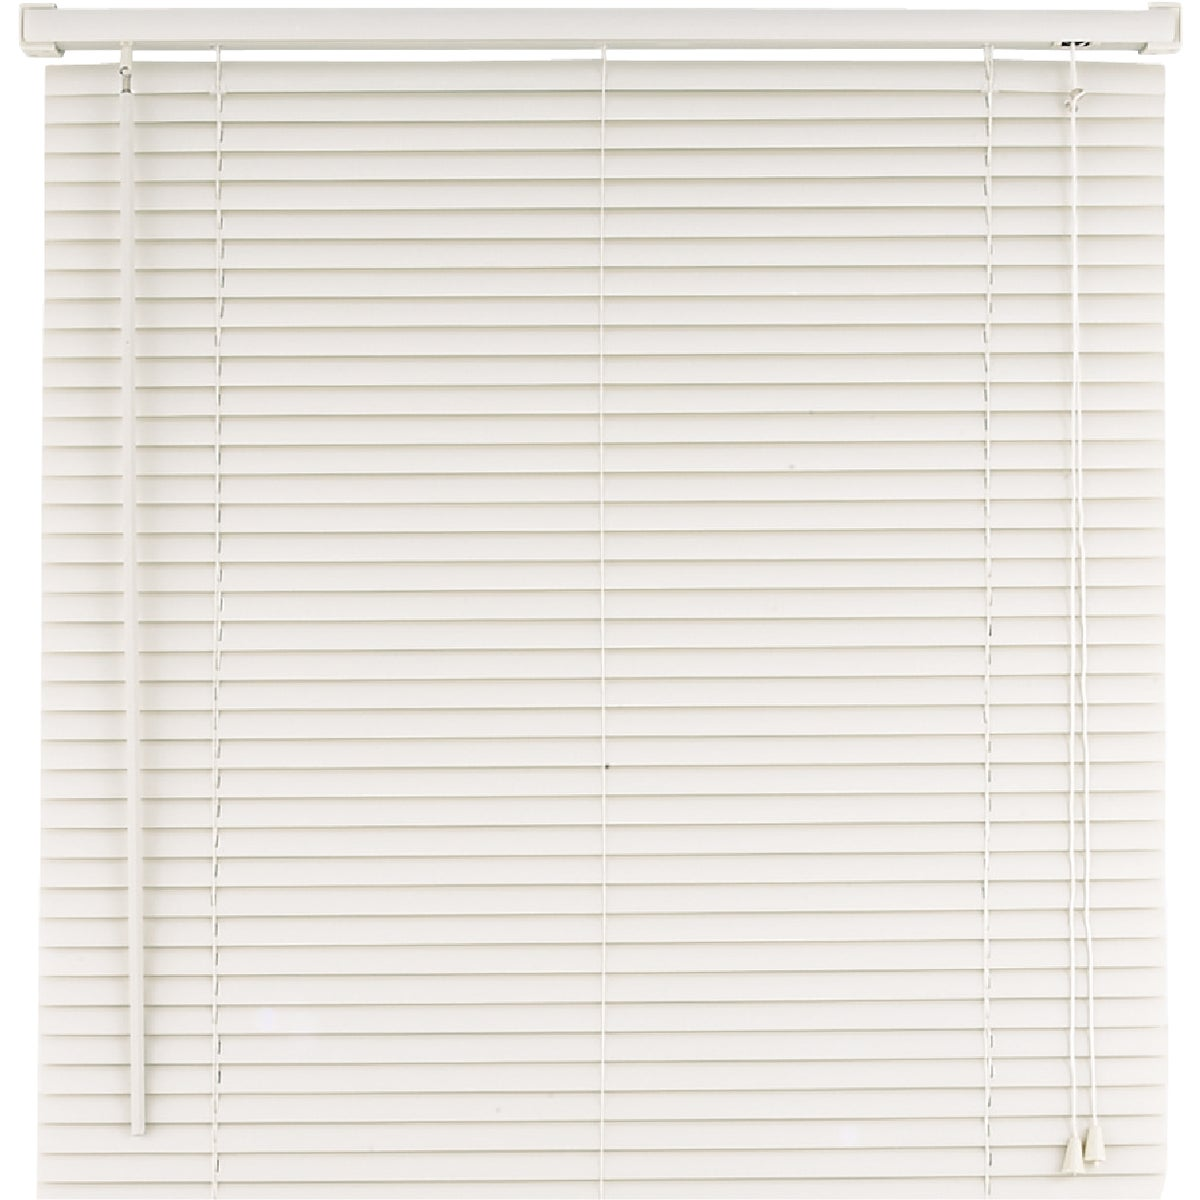 47X64 WHITE MINI BLIND - 4764W by Lotus Wind Incom